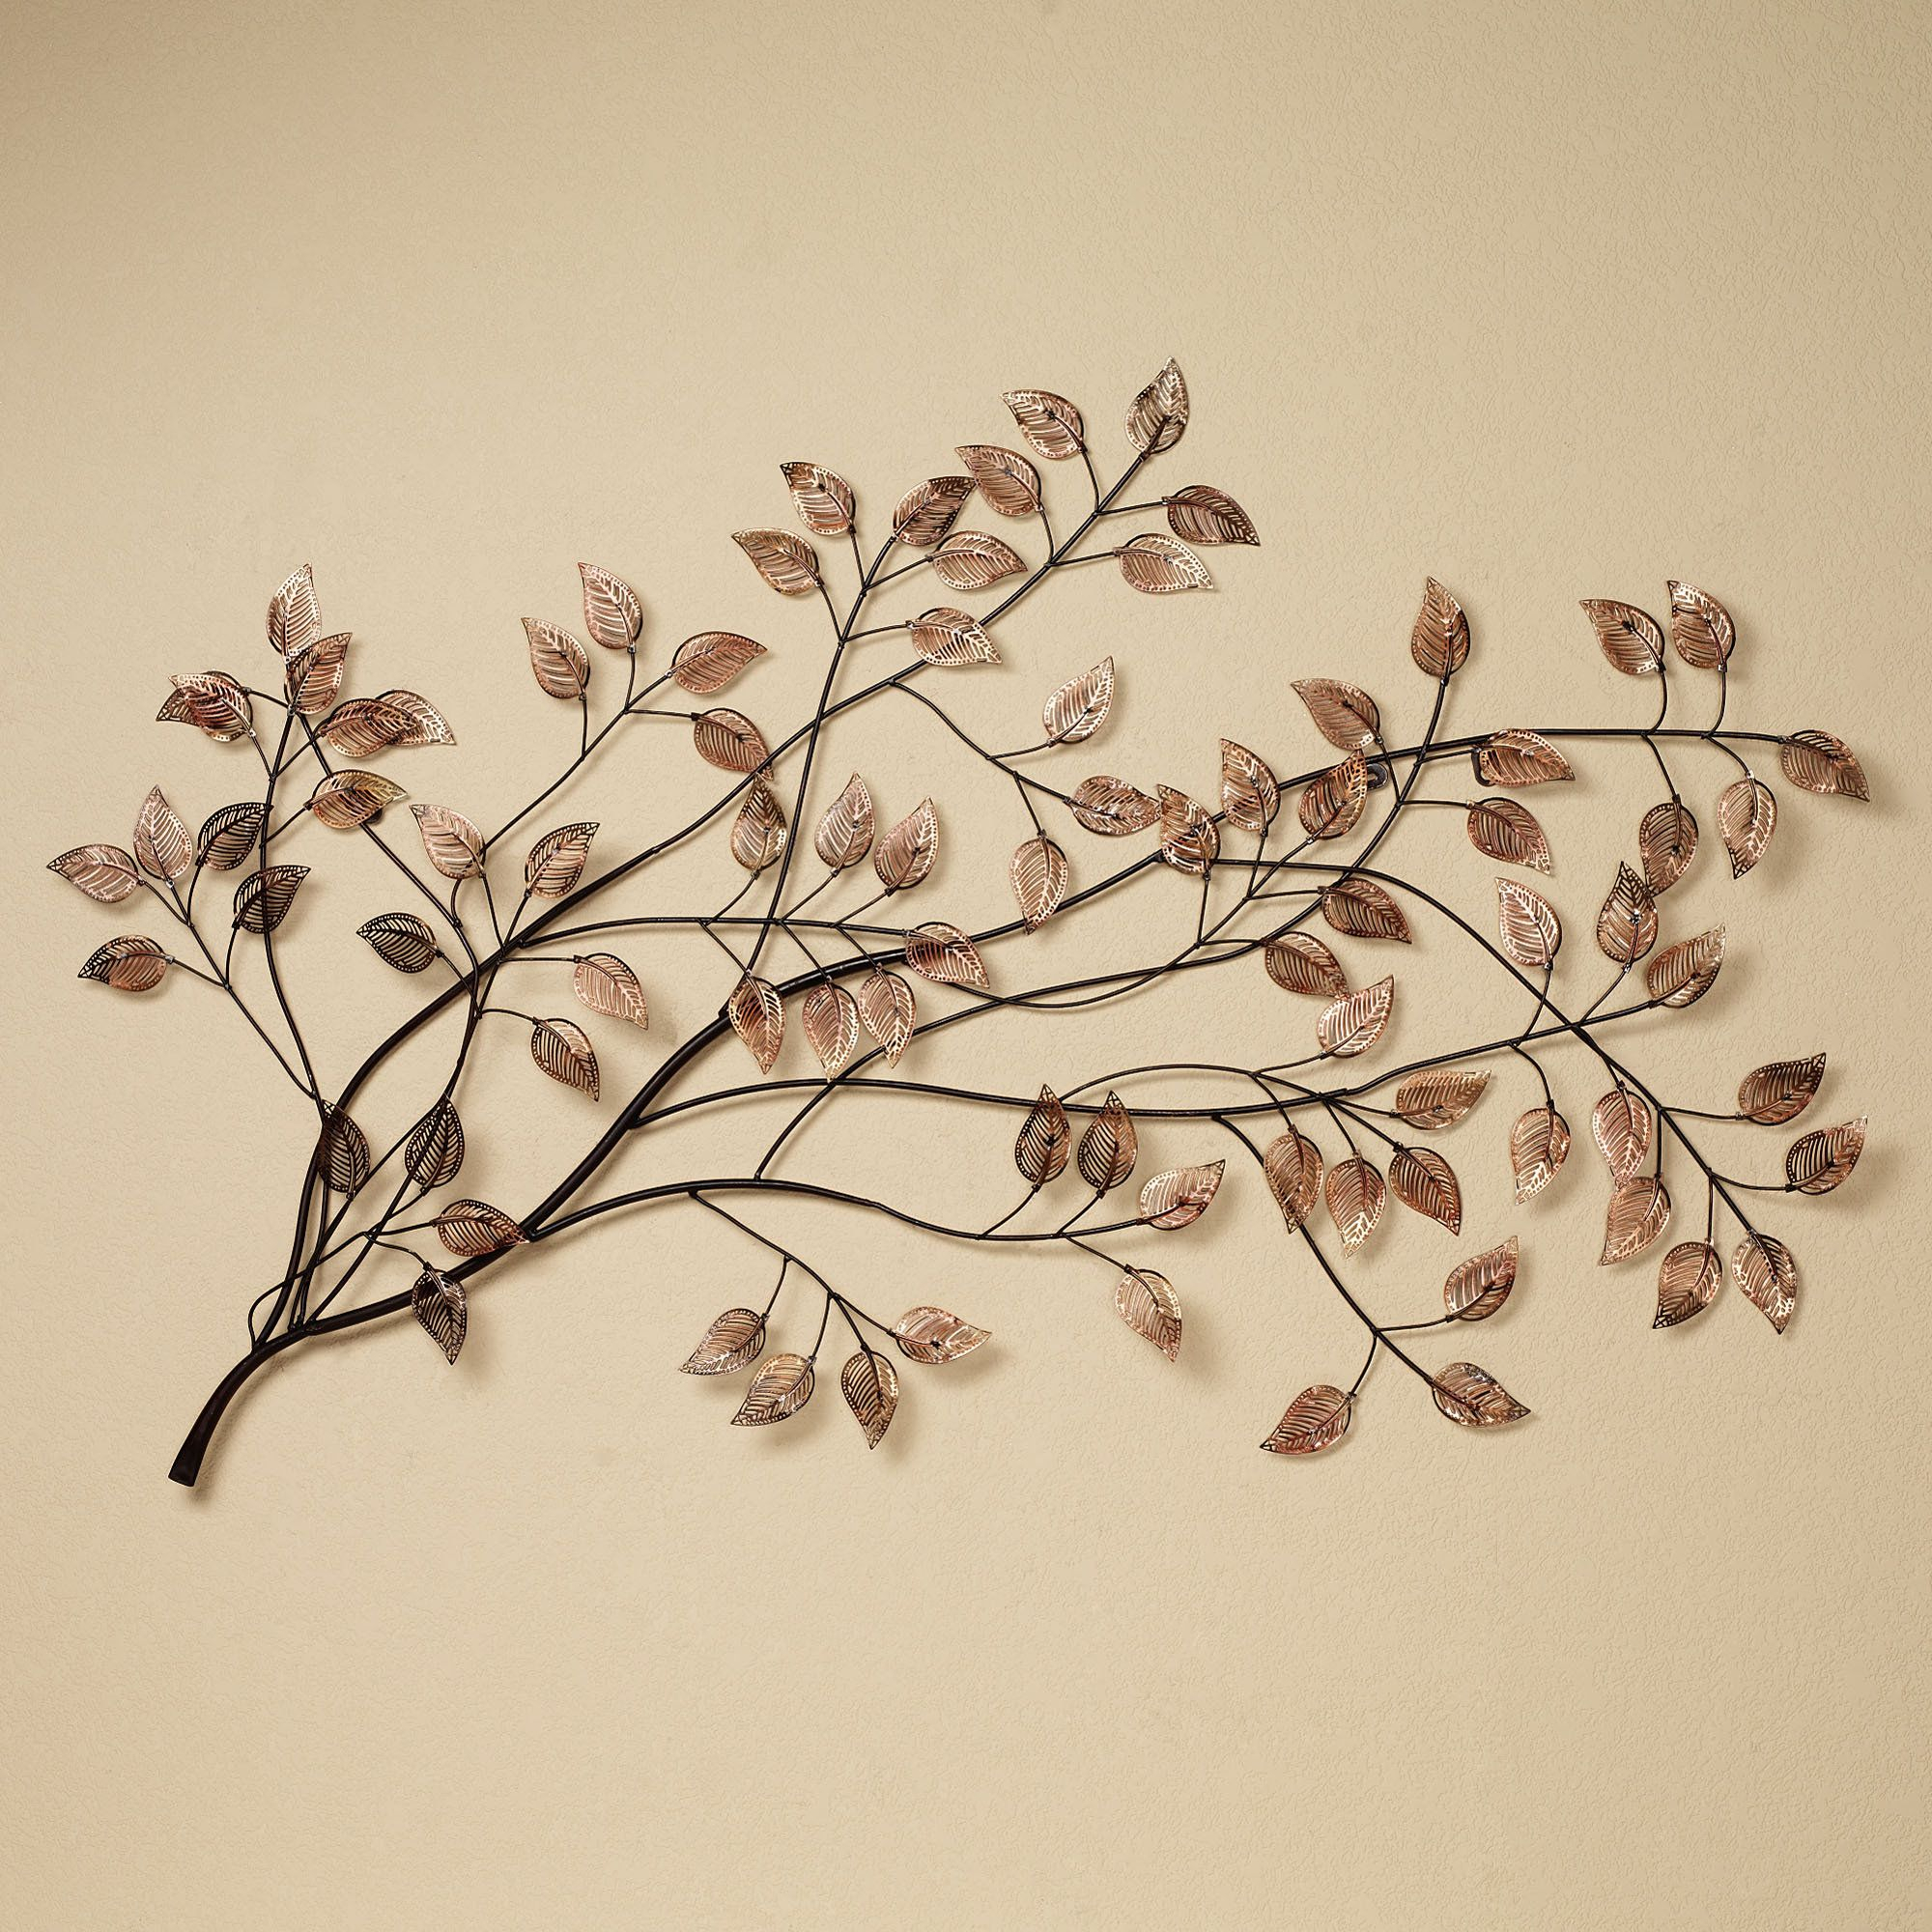 Branches At Sunrise Leaf Metal Wall Sculpture | Walls regarding Leaves Metal Sculpture Wall Decor (Image 10 of 30)